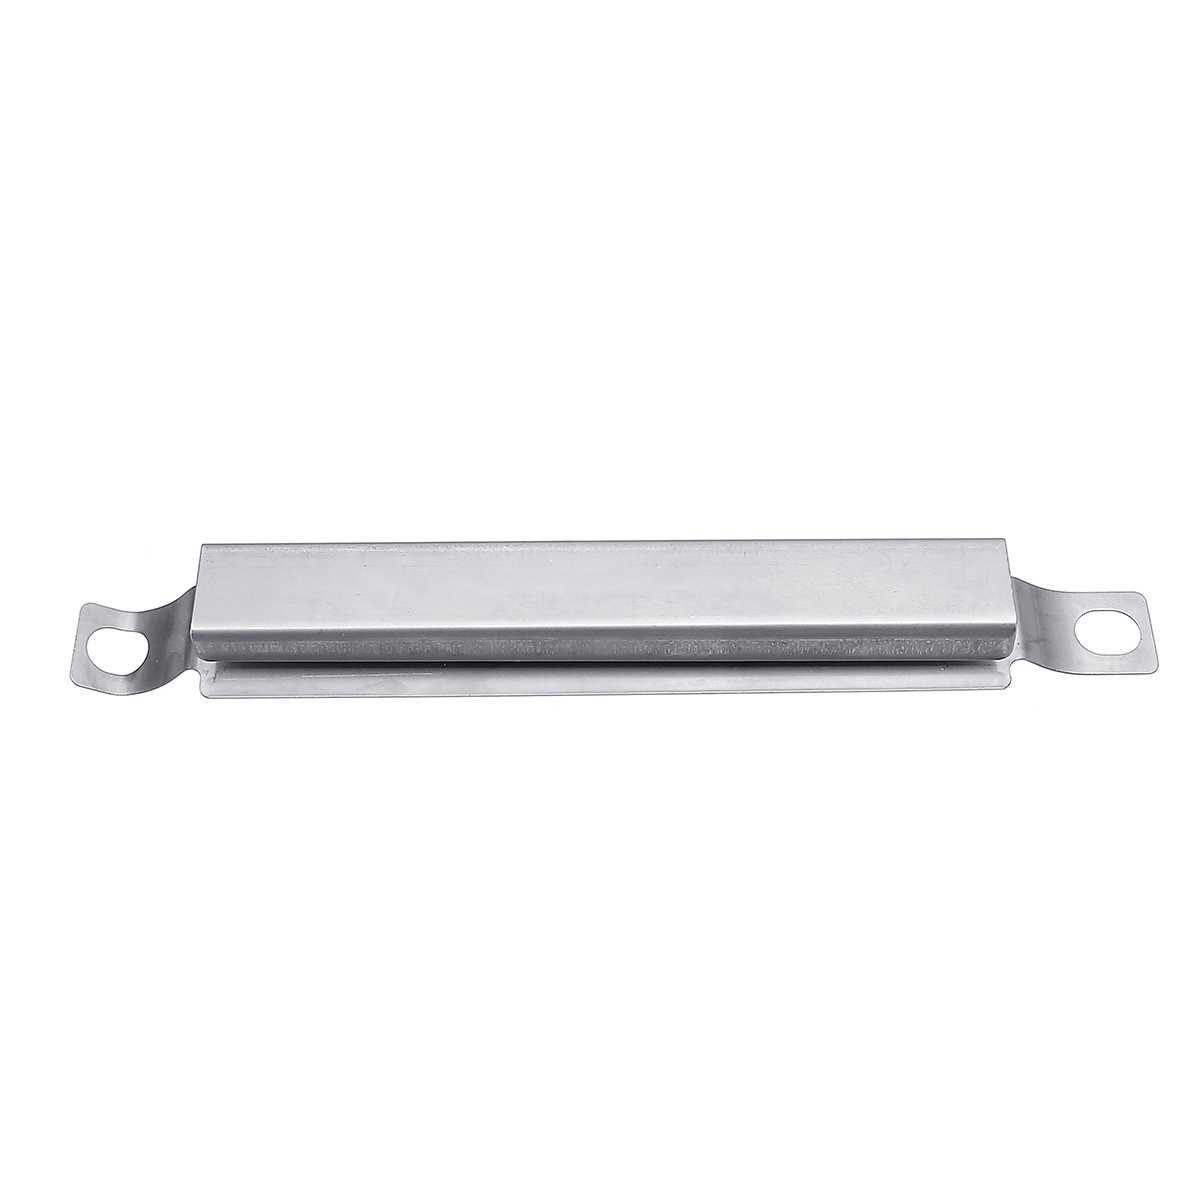 TENGGO Outdoor Stainless Steel Crossover Tube Barbecue BBQ Grill Gas Burner Parts Flavor Bars Accessories